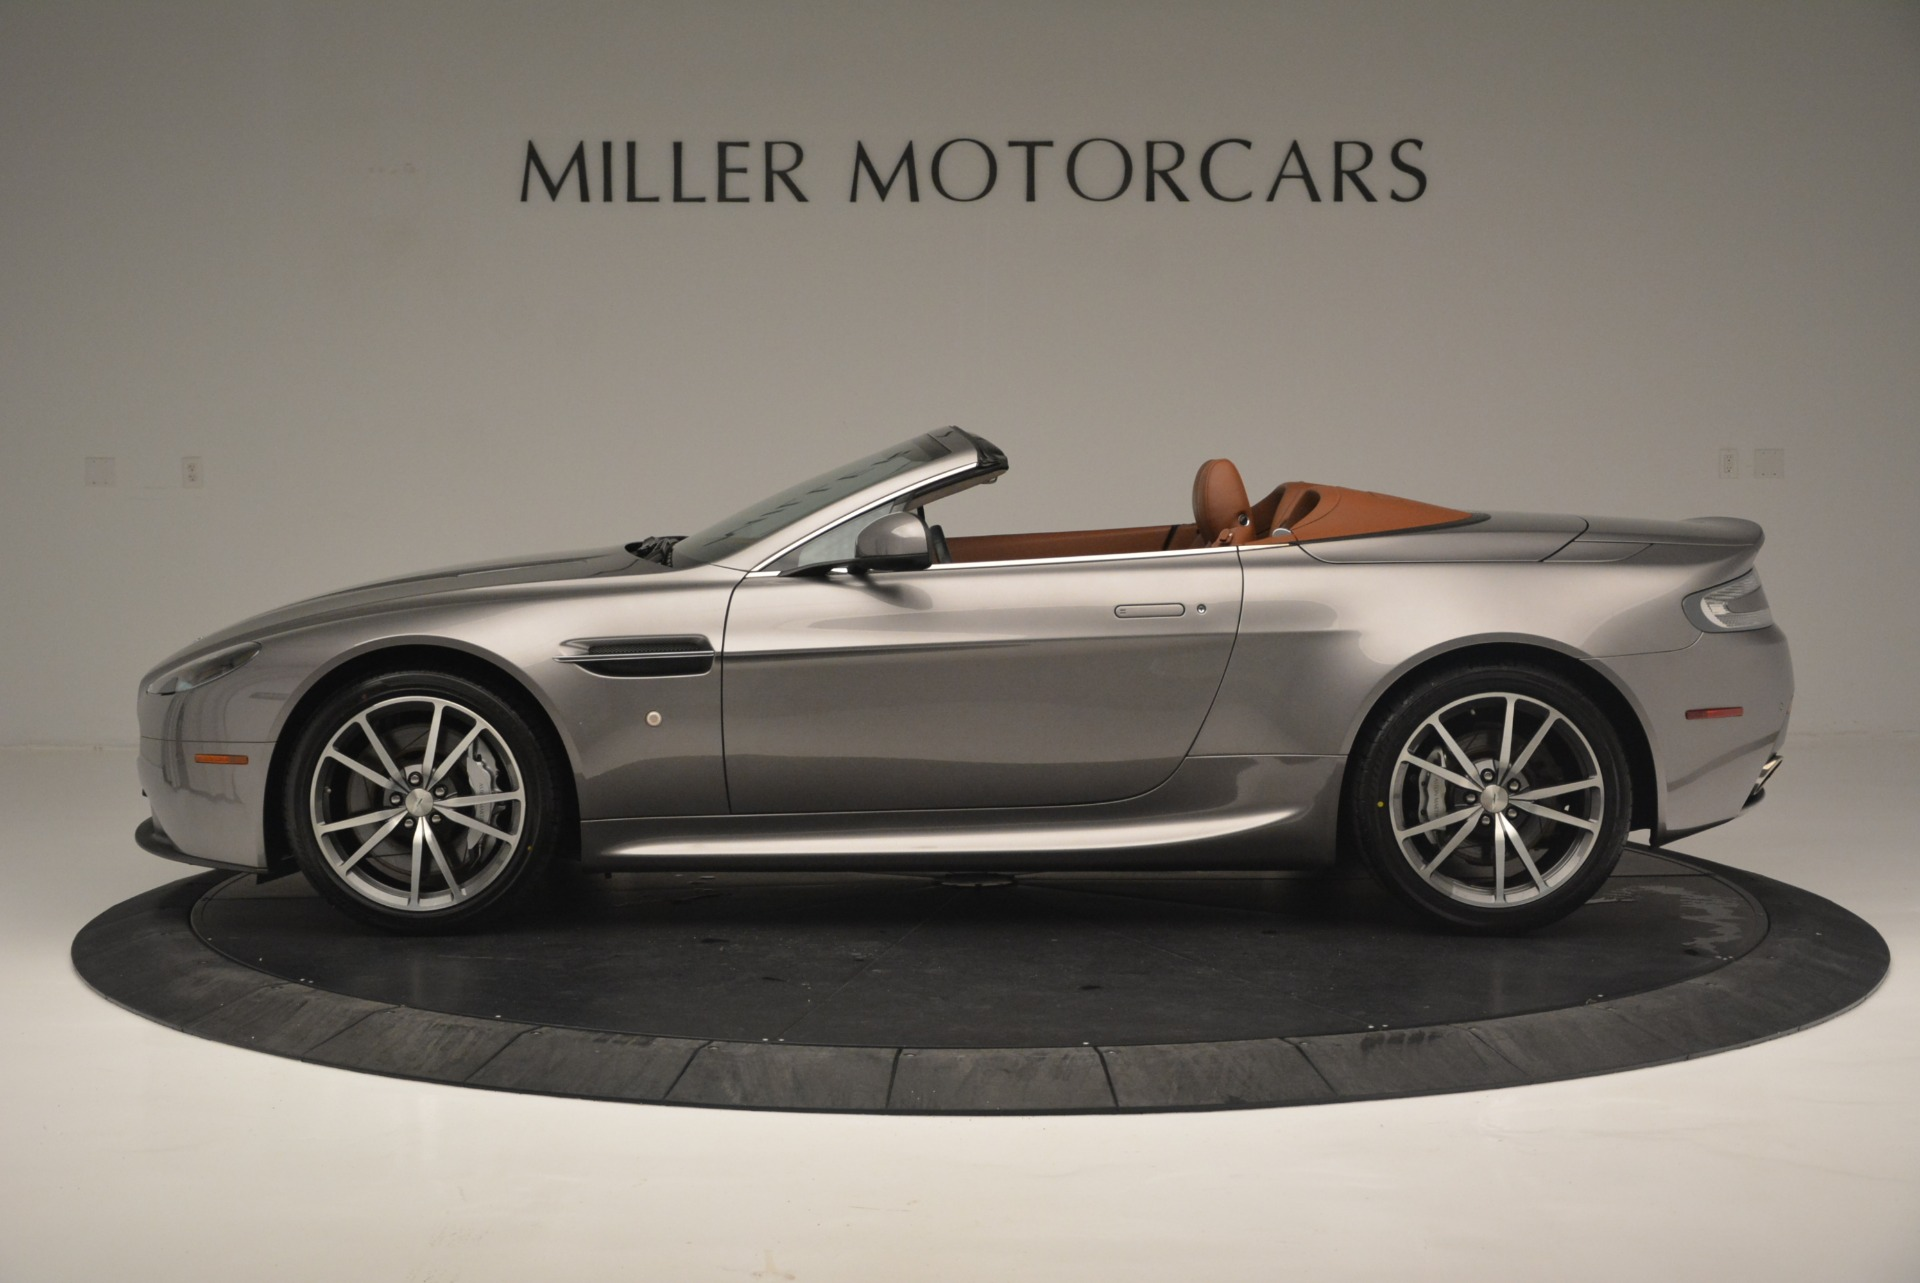 Used 2015 Aston Martin V8 Vantage Roadster For Sale In Greenwich, CT 2463_p3